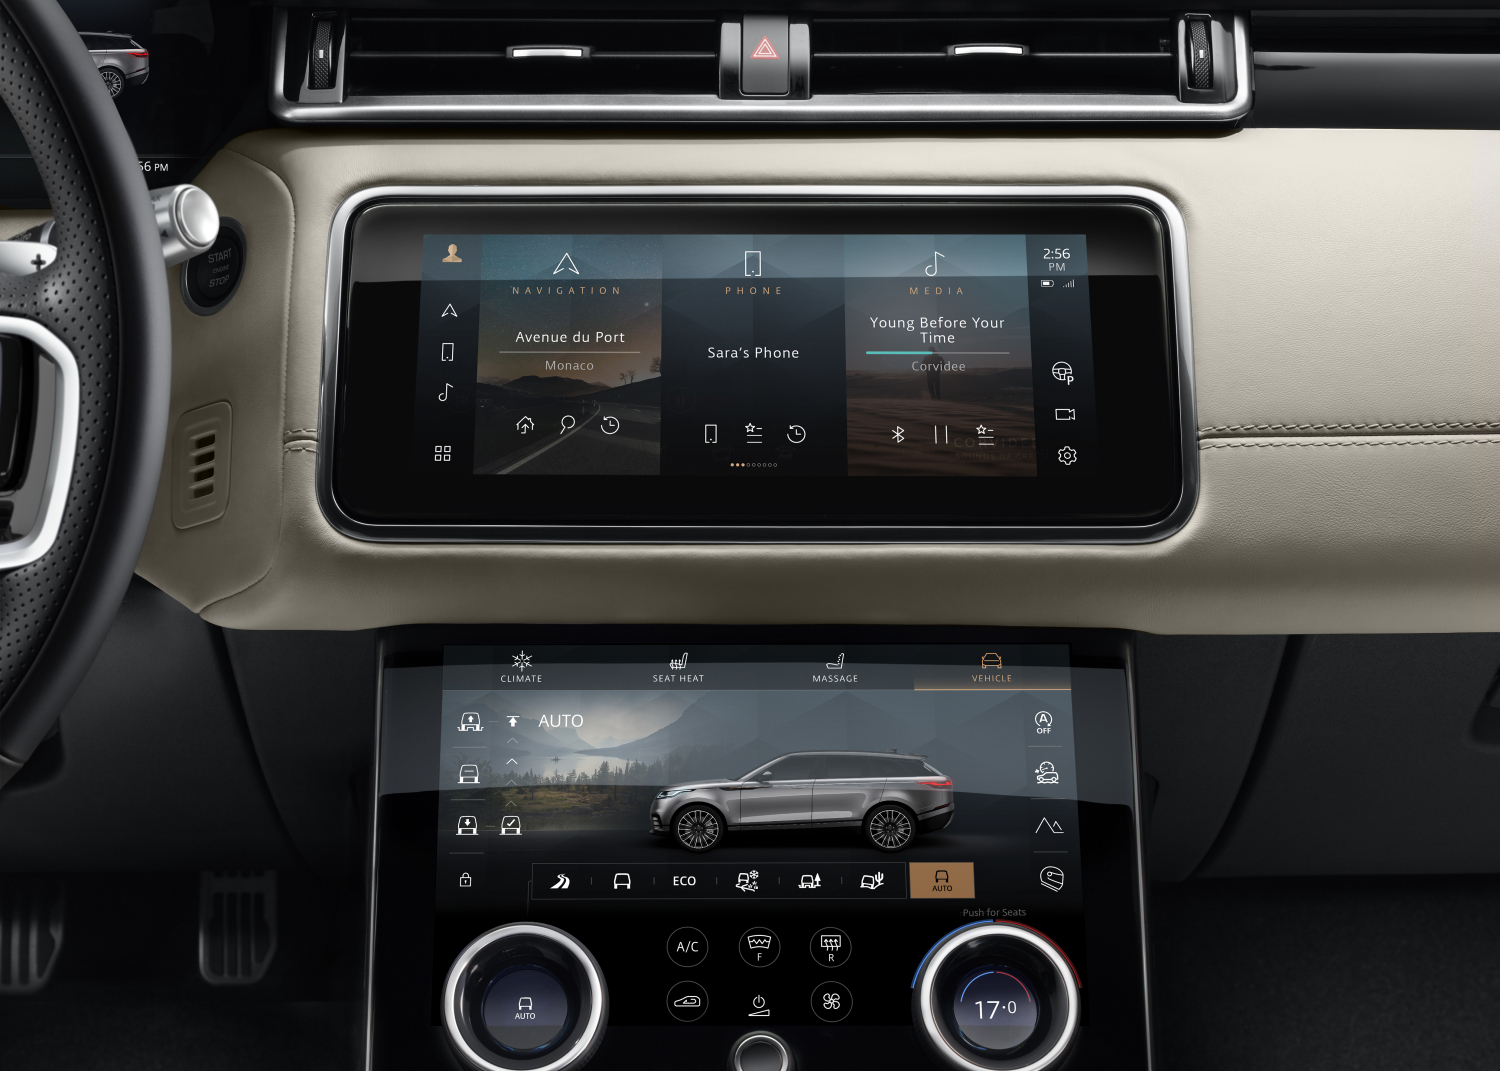 Range Rover Velar Electrifies with Plug-in Hybrid and State-of-the-art Infotainment - Image 2